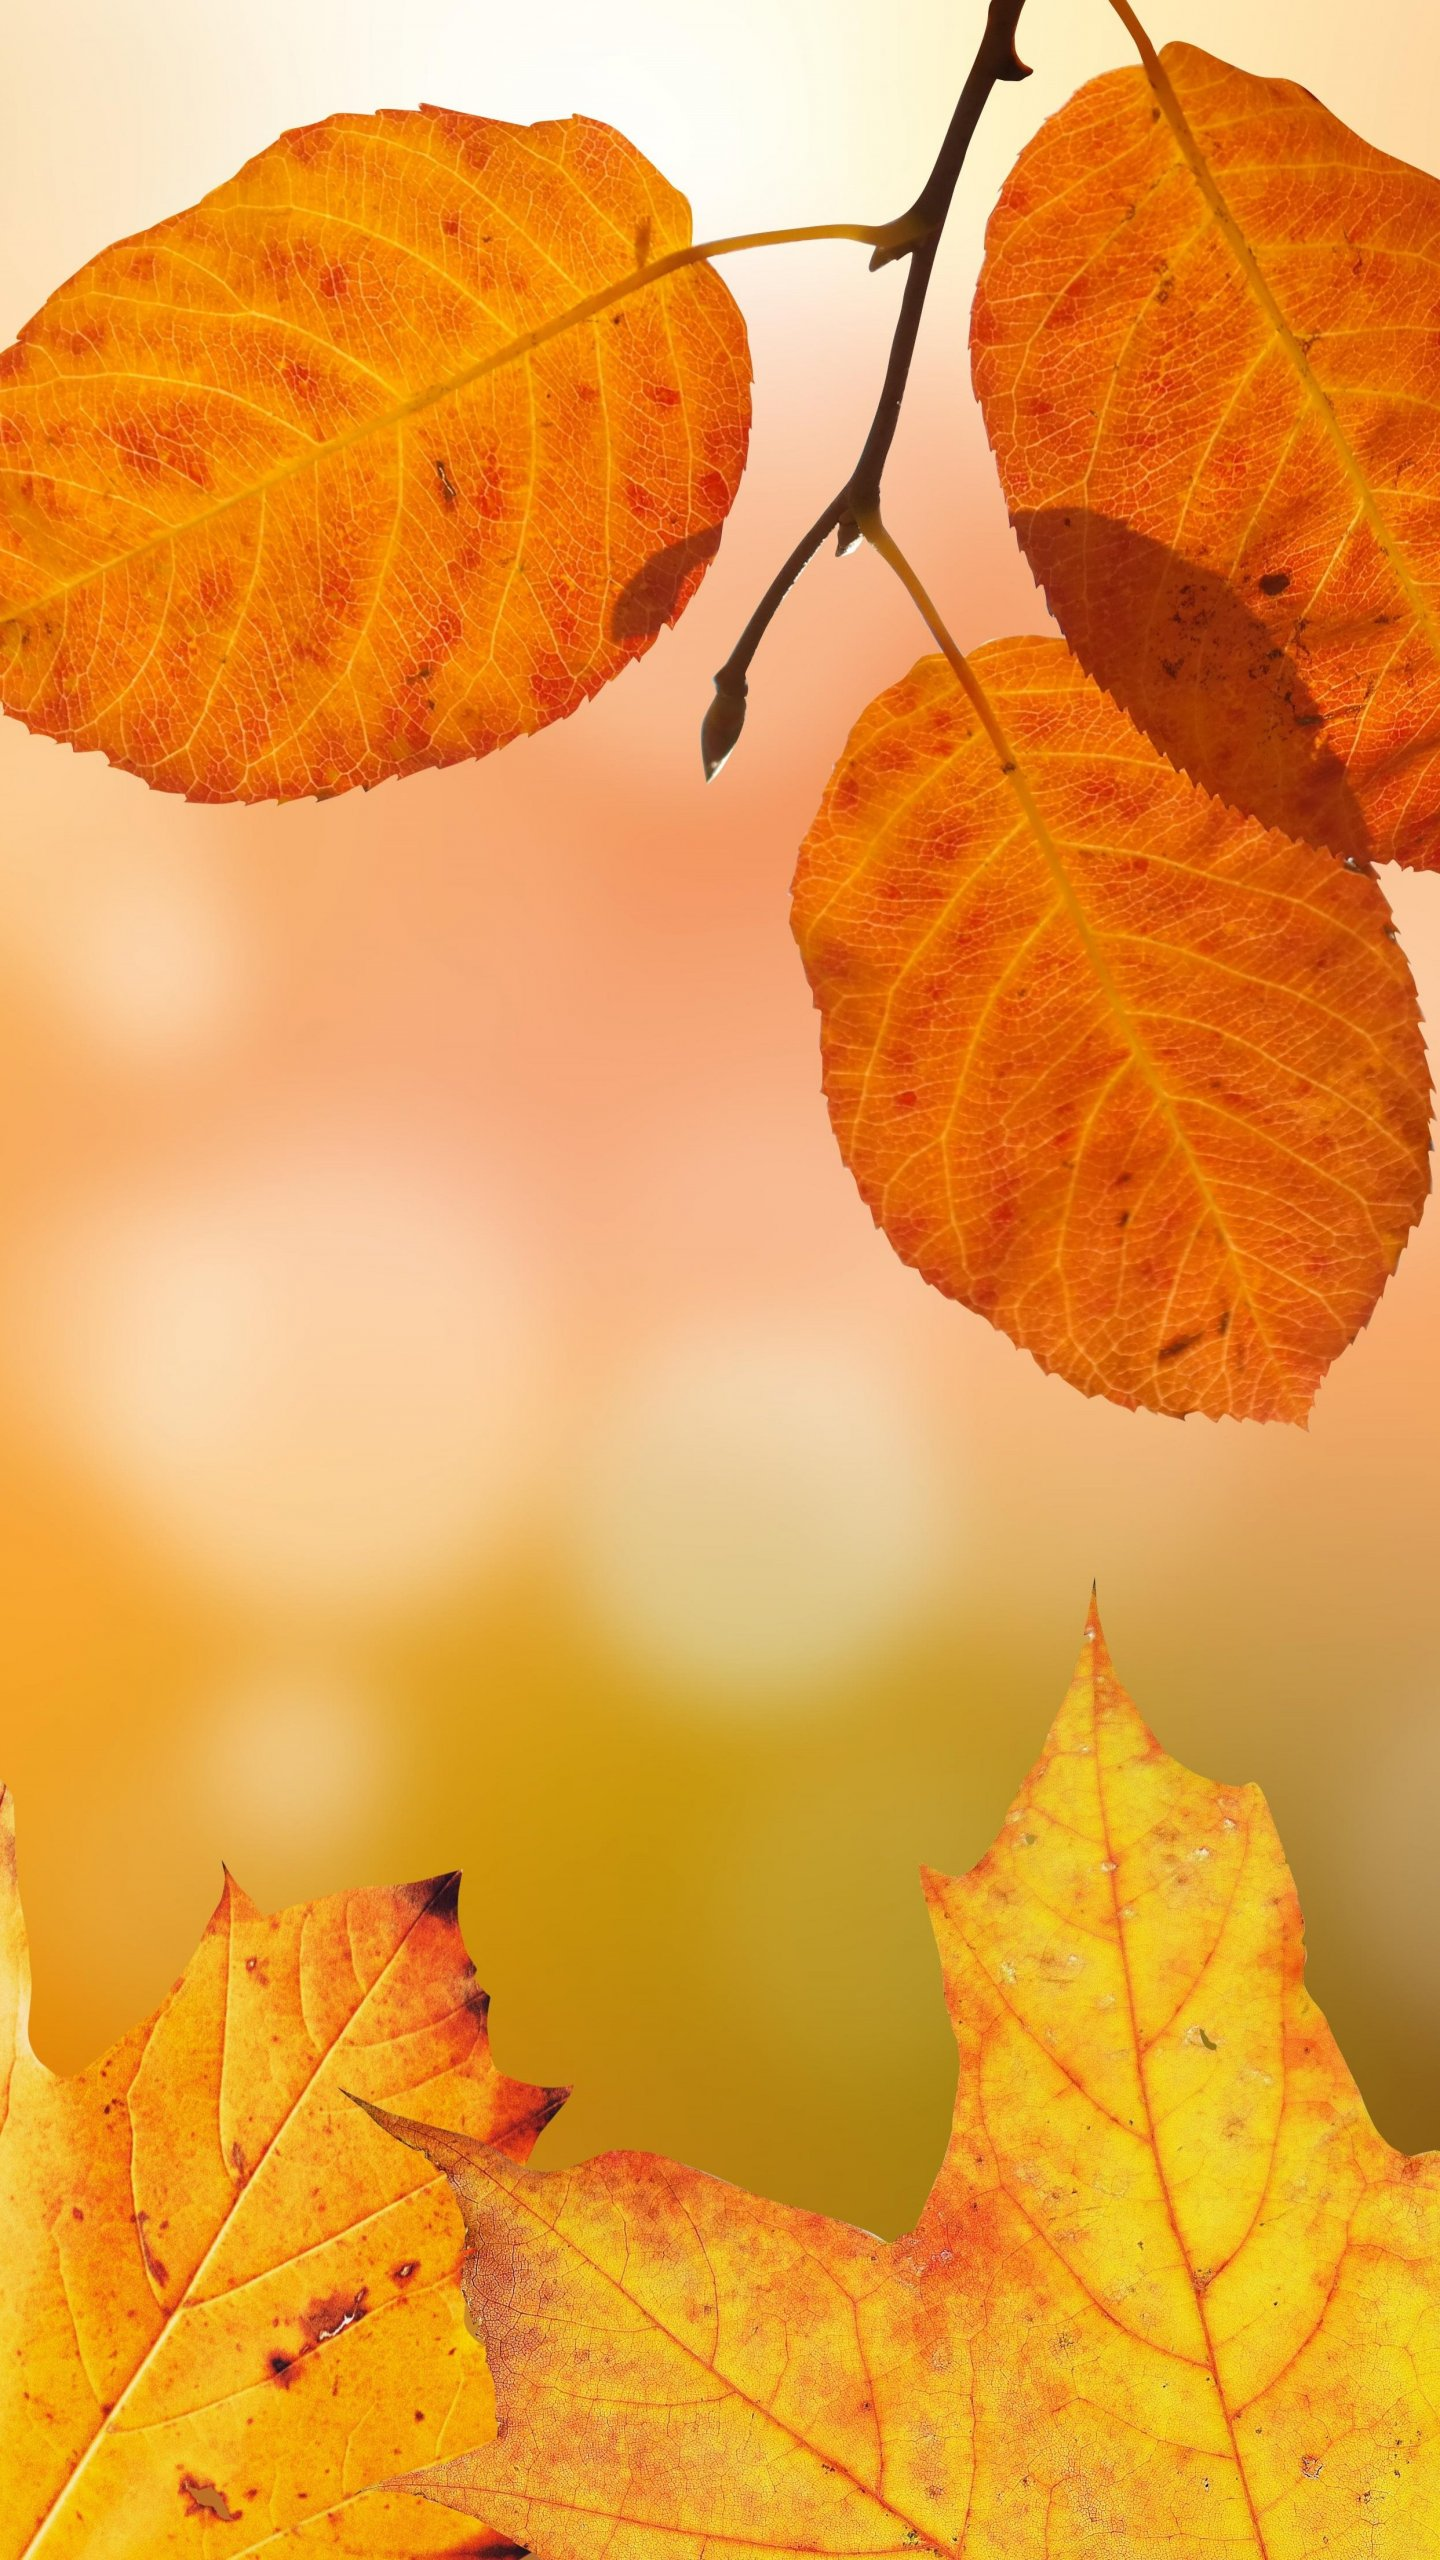 Autumn Leaves Wallpaper Iphone Android Desktop Backgrounds